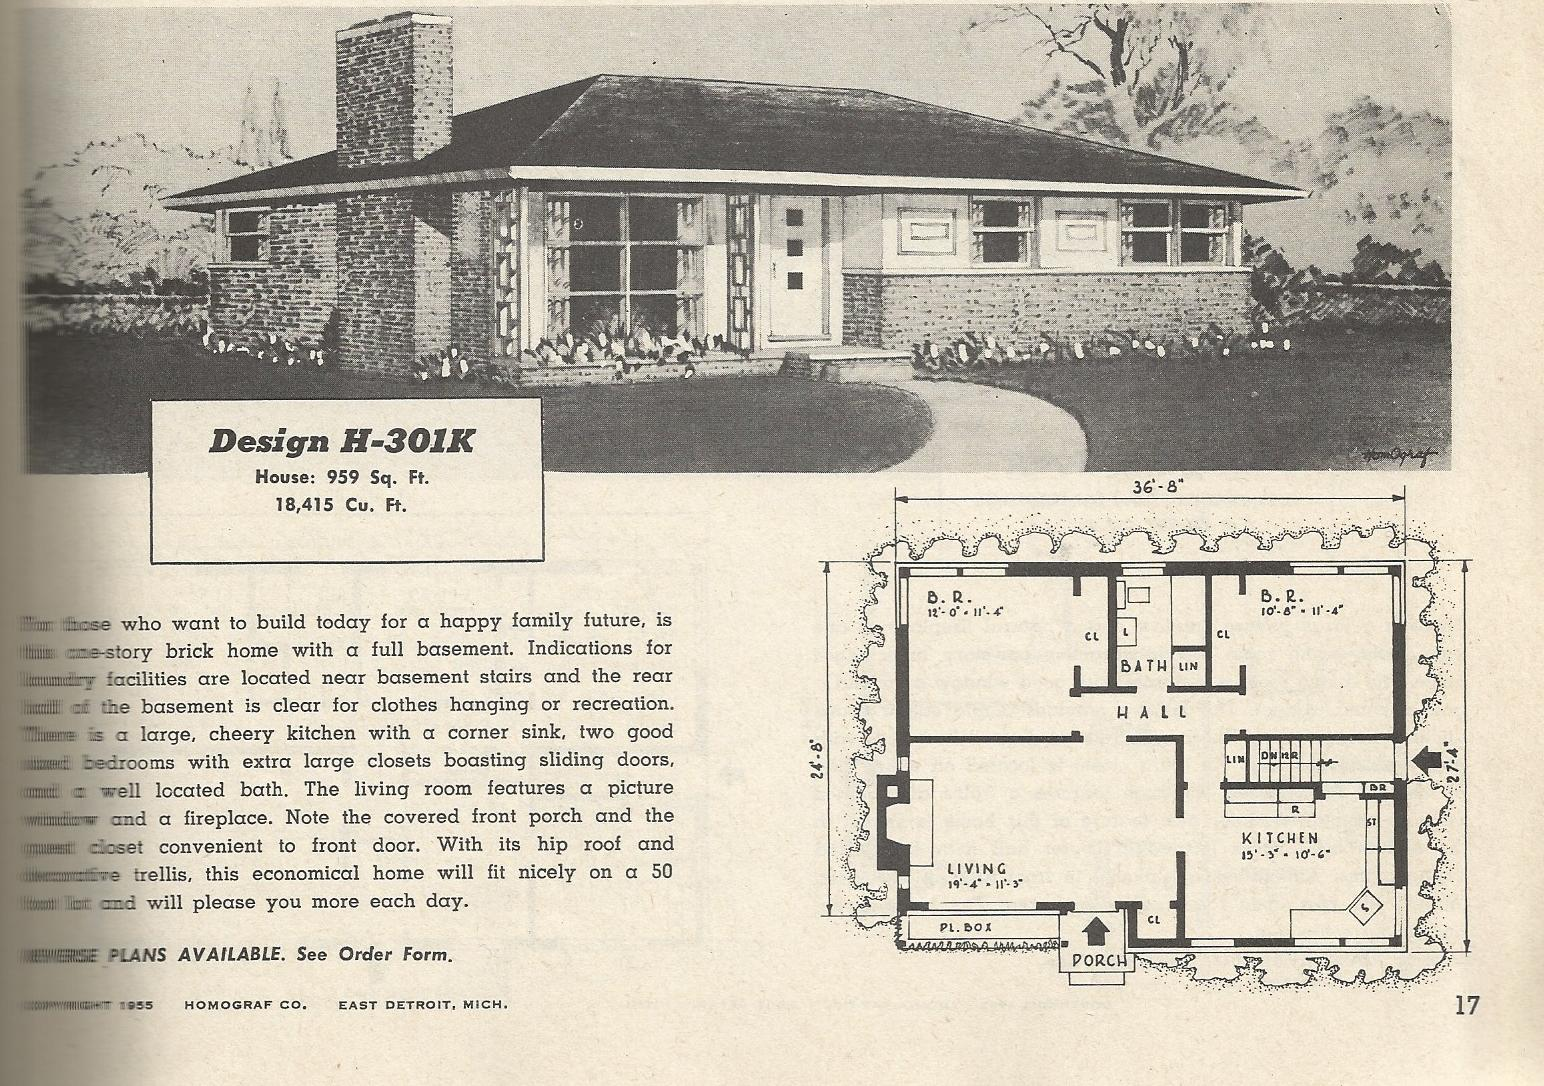 1950S House Stunning Vintage House Plans 1950S Budgetwise Homes  Antique Alter Ego Design Decoration